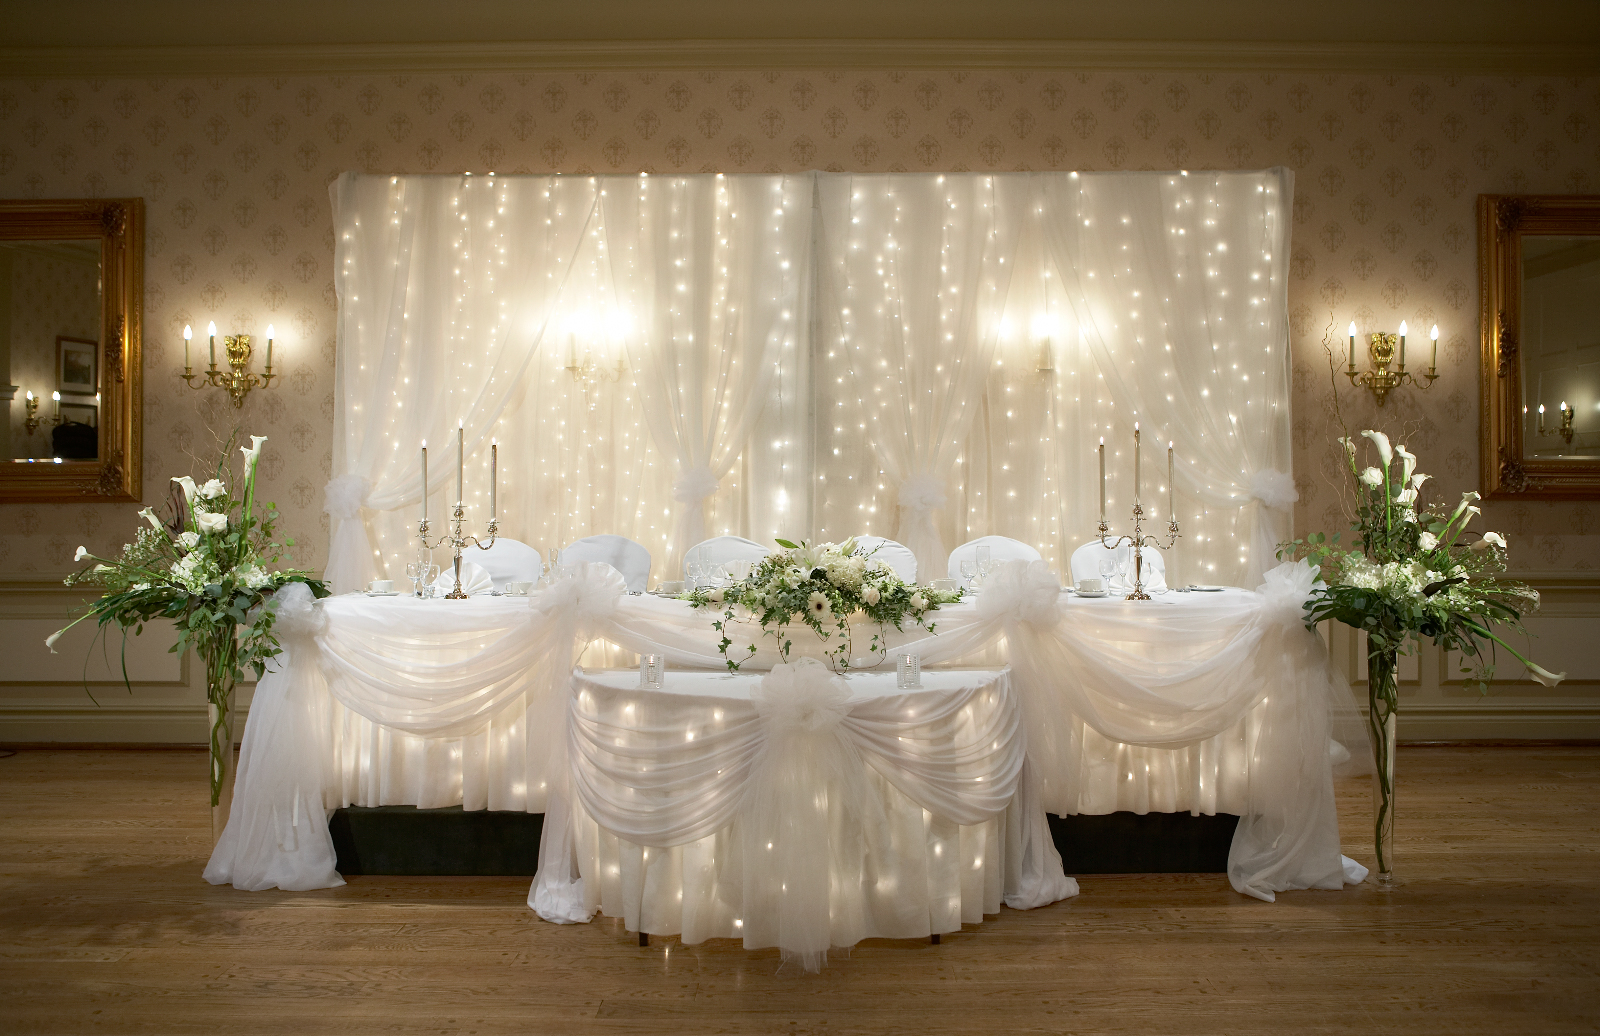 Wedding chapel decor packages at the old mill toronto head table wedding decorations junglespirit Image collections